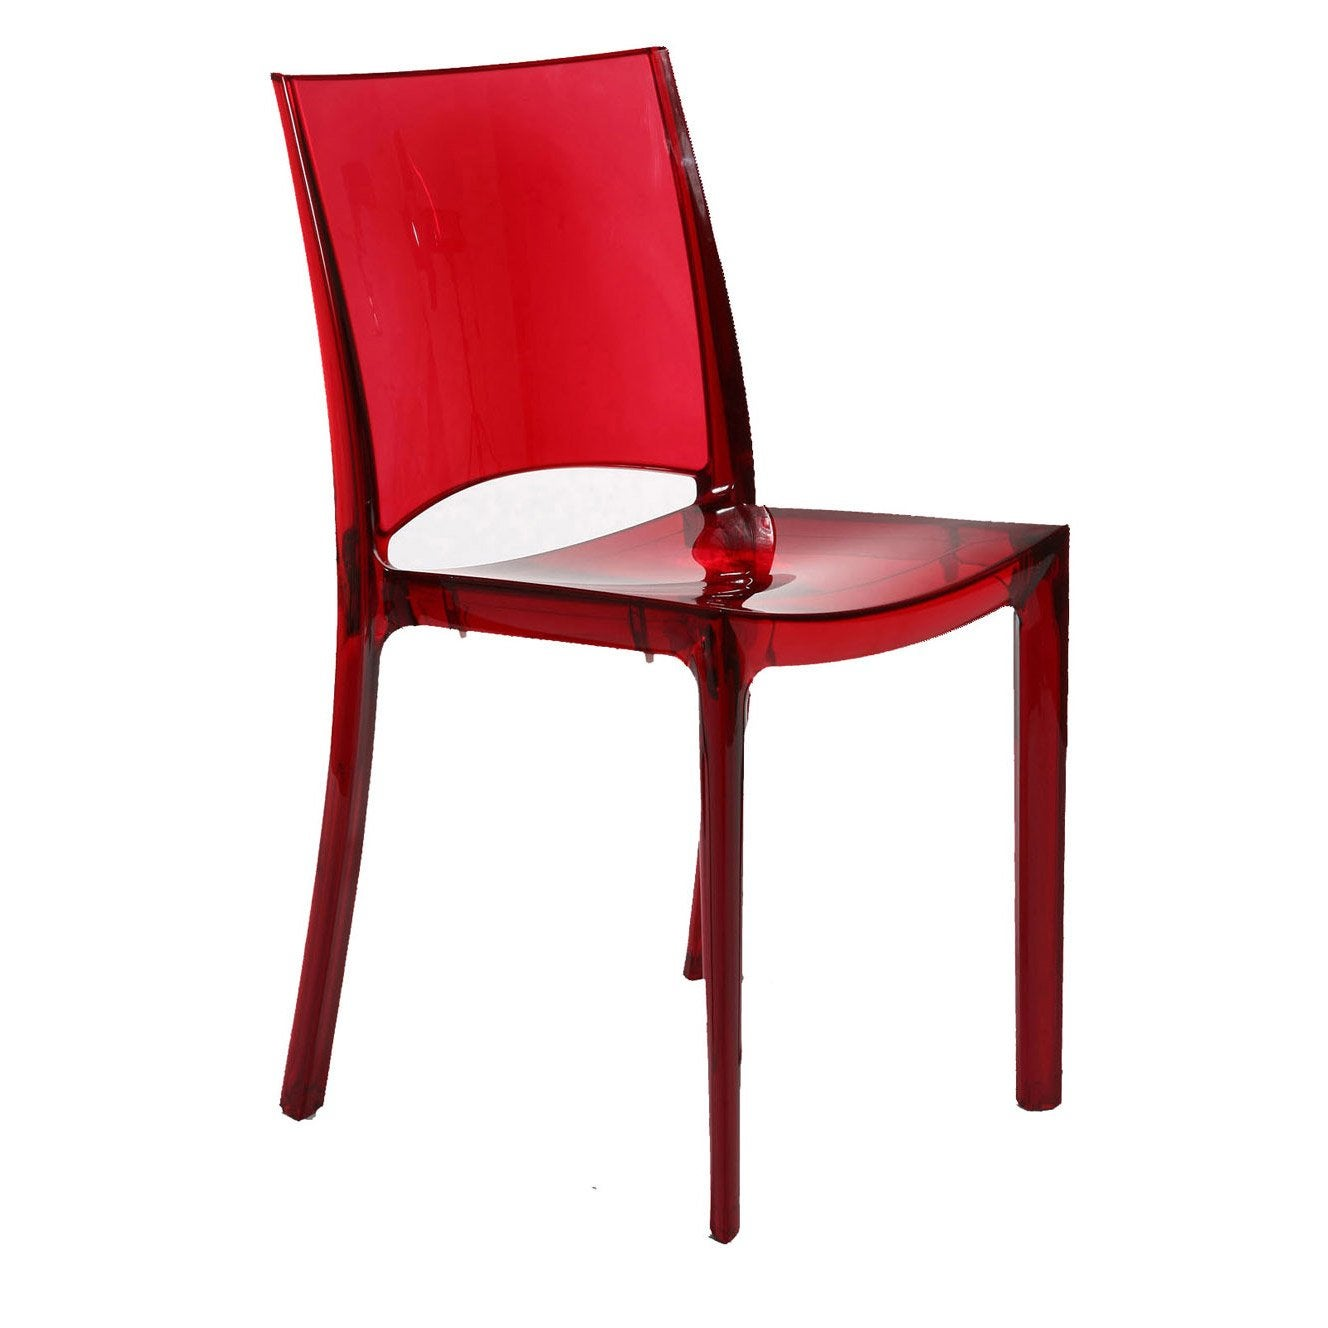 Chaise de jardin en polycarbonate paris lux rouge leroy for Chaise jardin